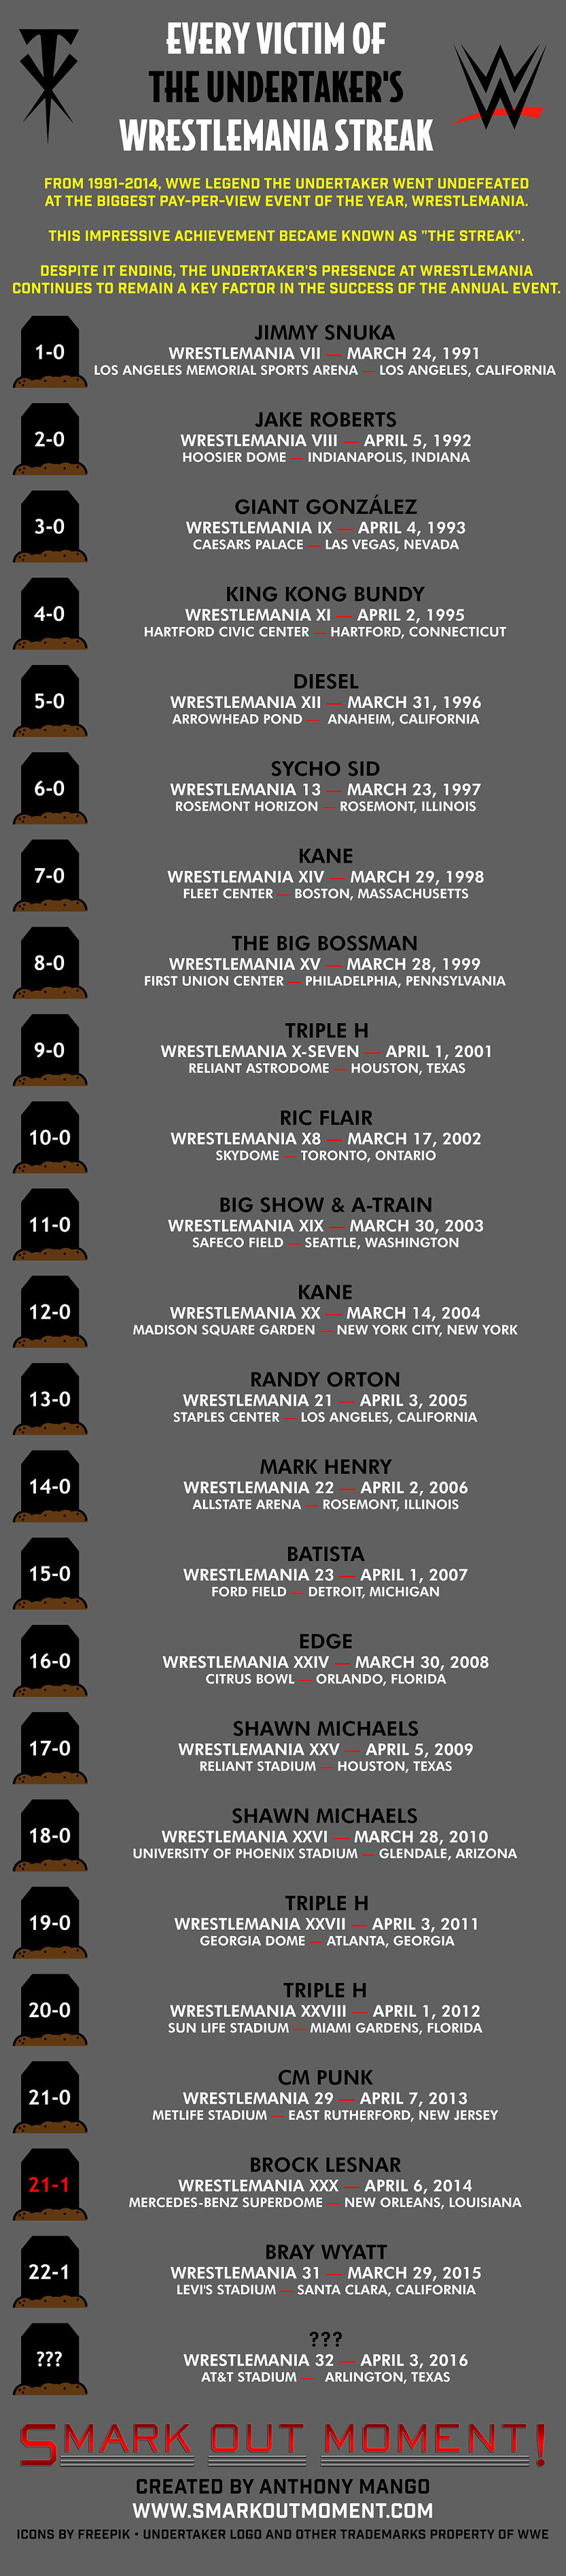 WWE infographic WrestleMania Undertaker wins